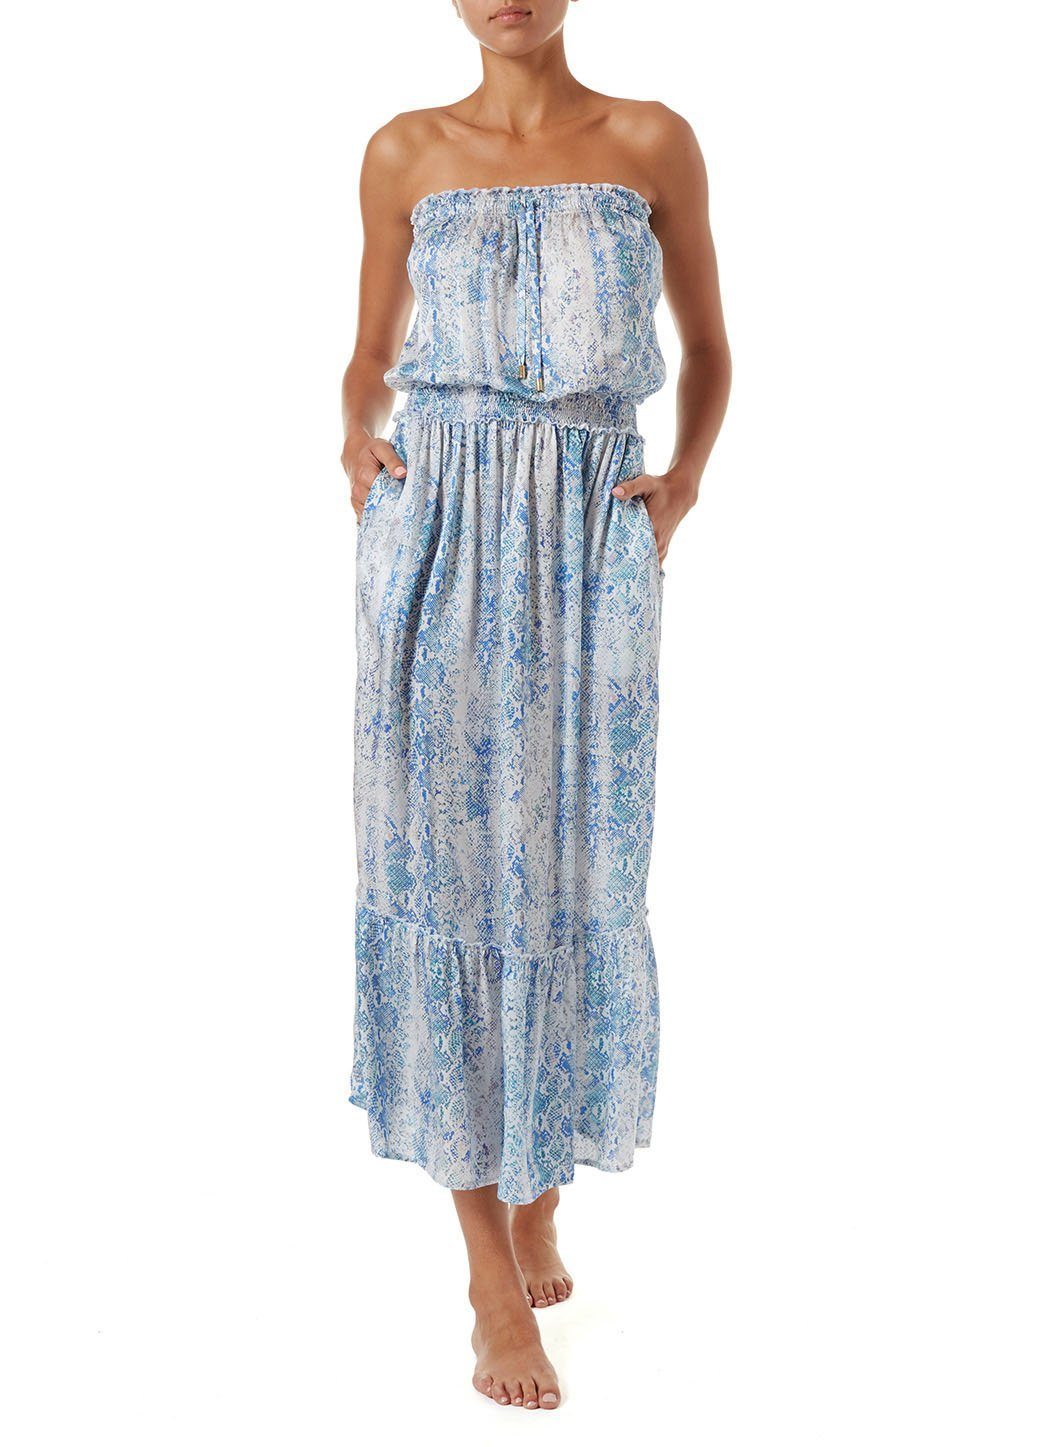 rachel serpente bandeau silk maxi dress 2019 F